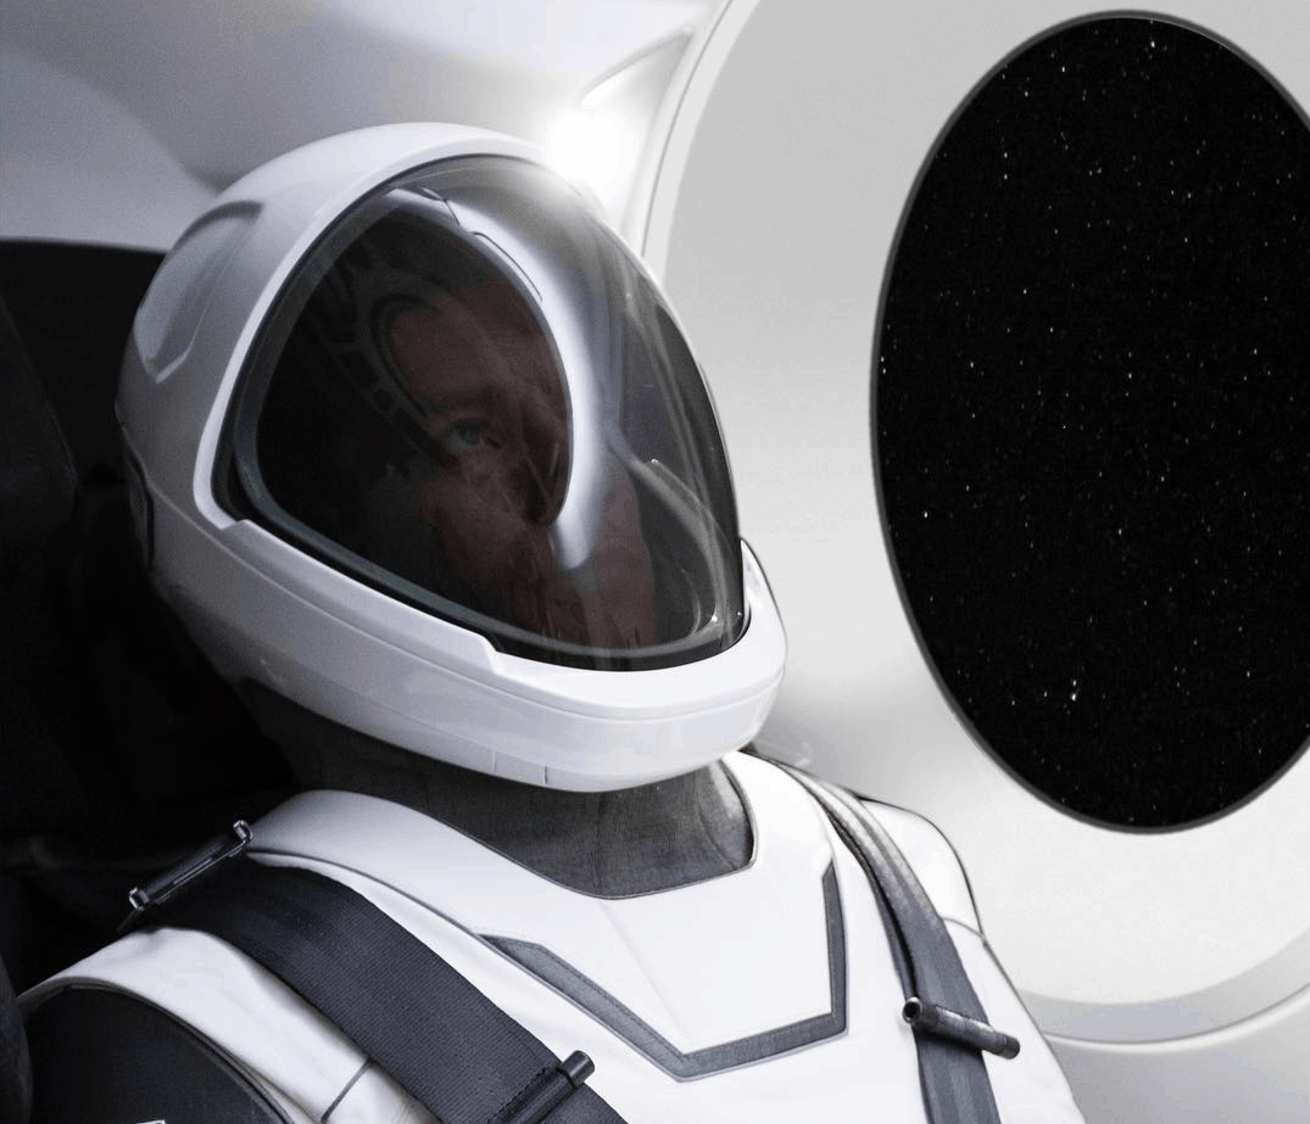 SpaceX apresenta o traje espacial do futuro